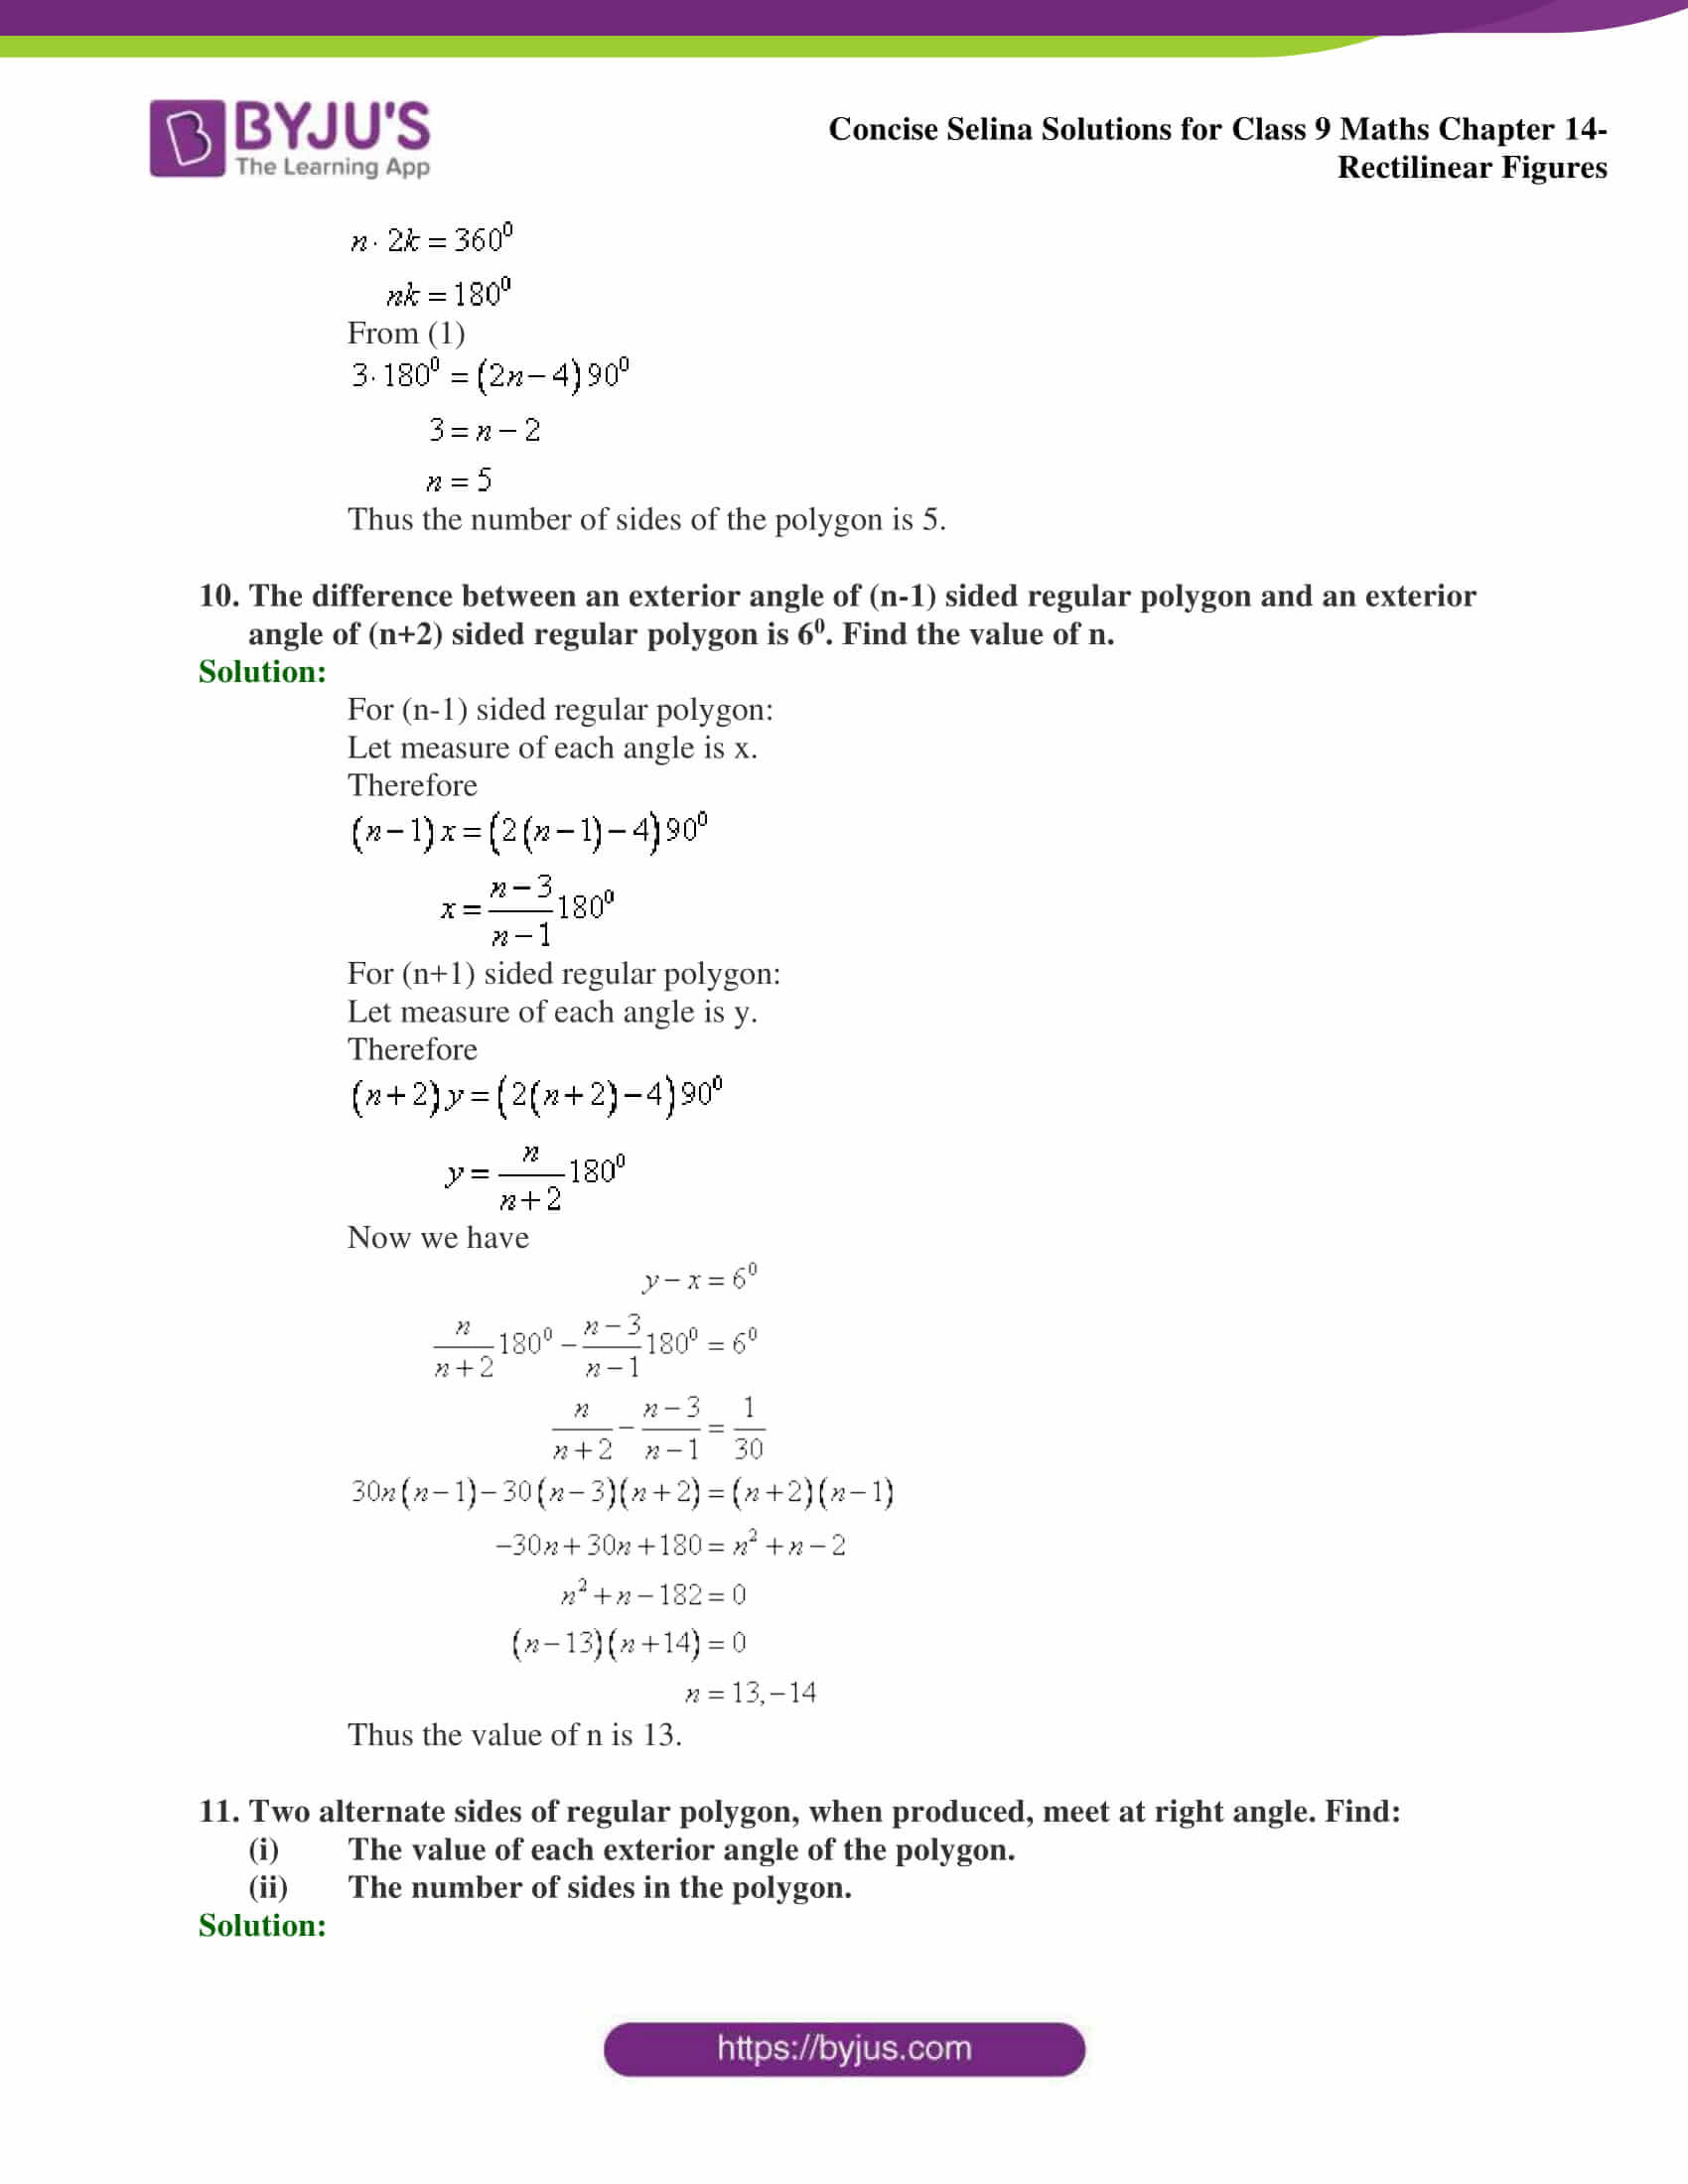 selina Solutions for Class 9 Maths Chapter 14 part 04